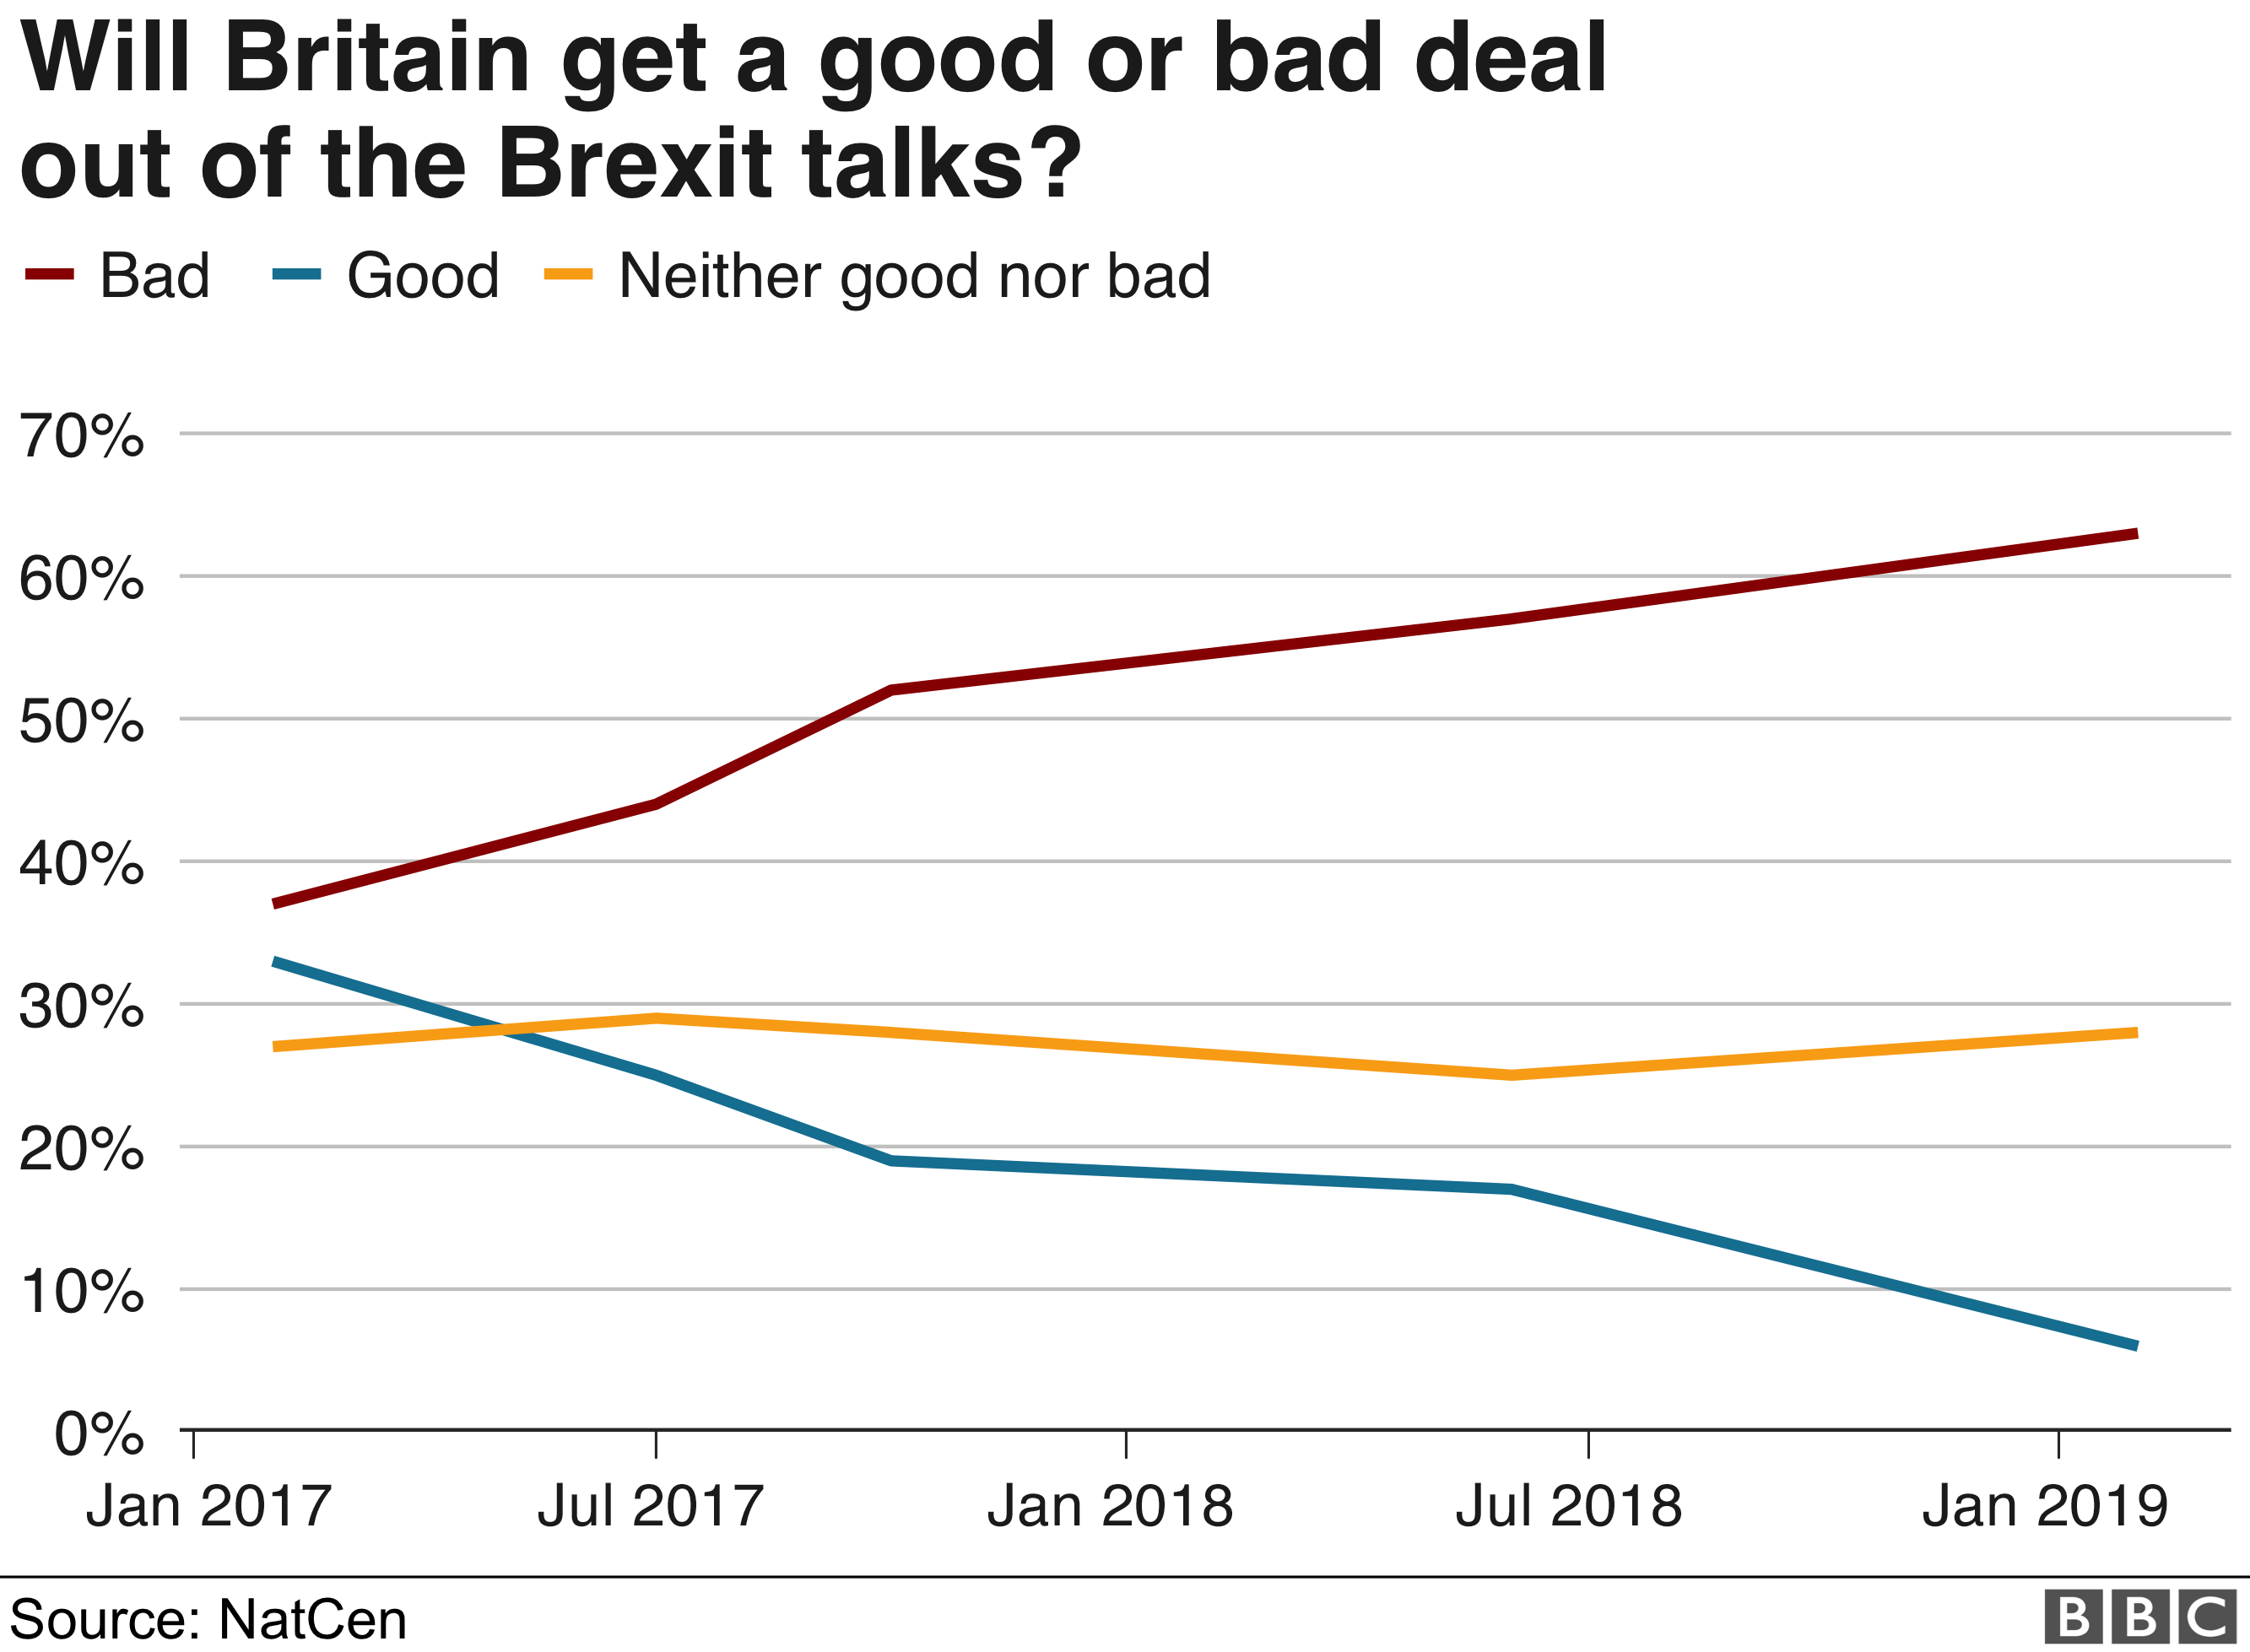 Chart showing opinion on whether the UK will get a good deal or a bad deal